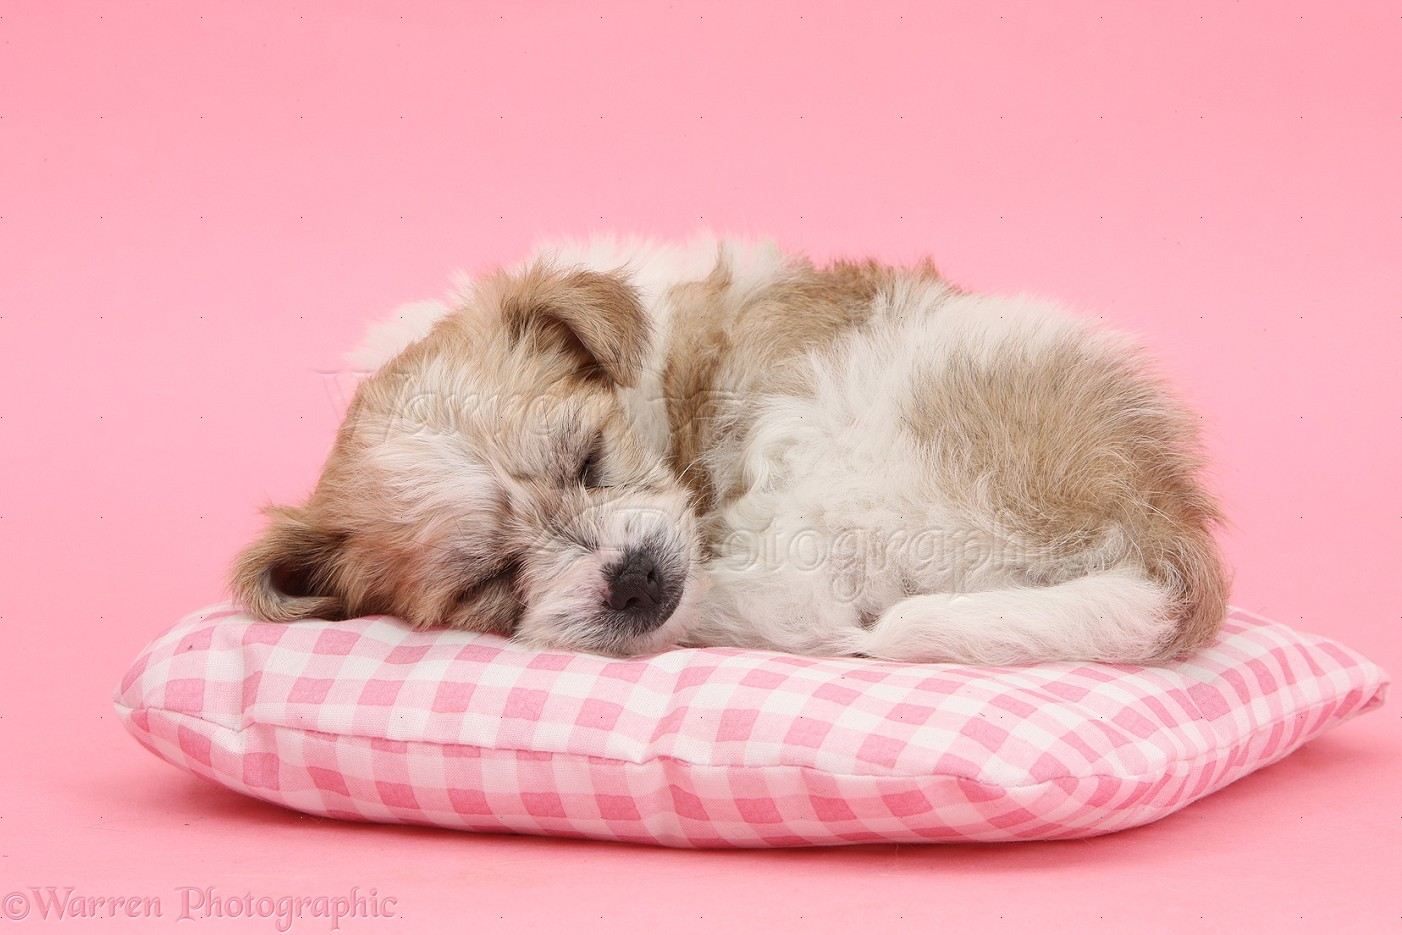 WP35547 Bichon Frisé x Yorkshire Terrier pup, 6 weeks old, asleep on ...